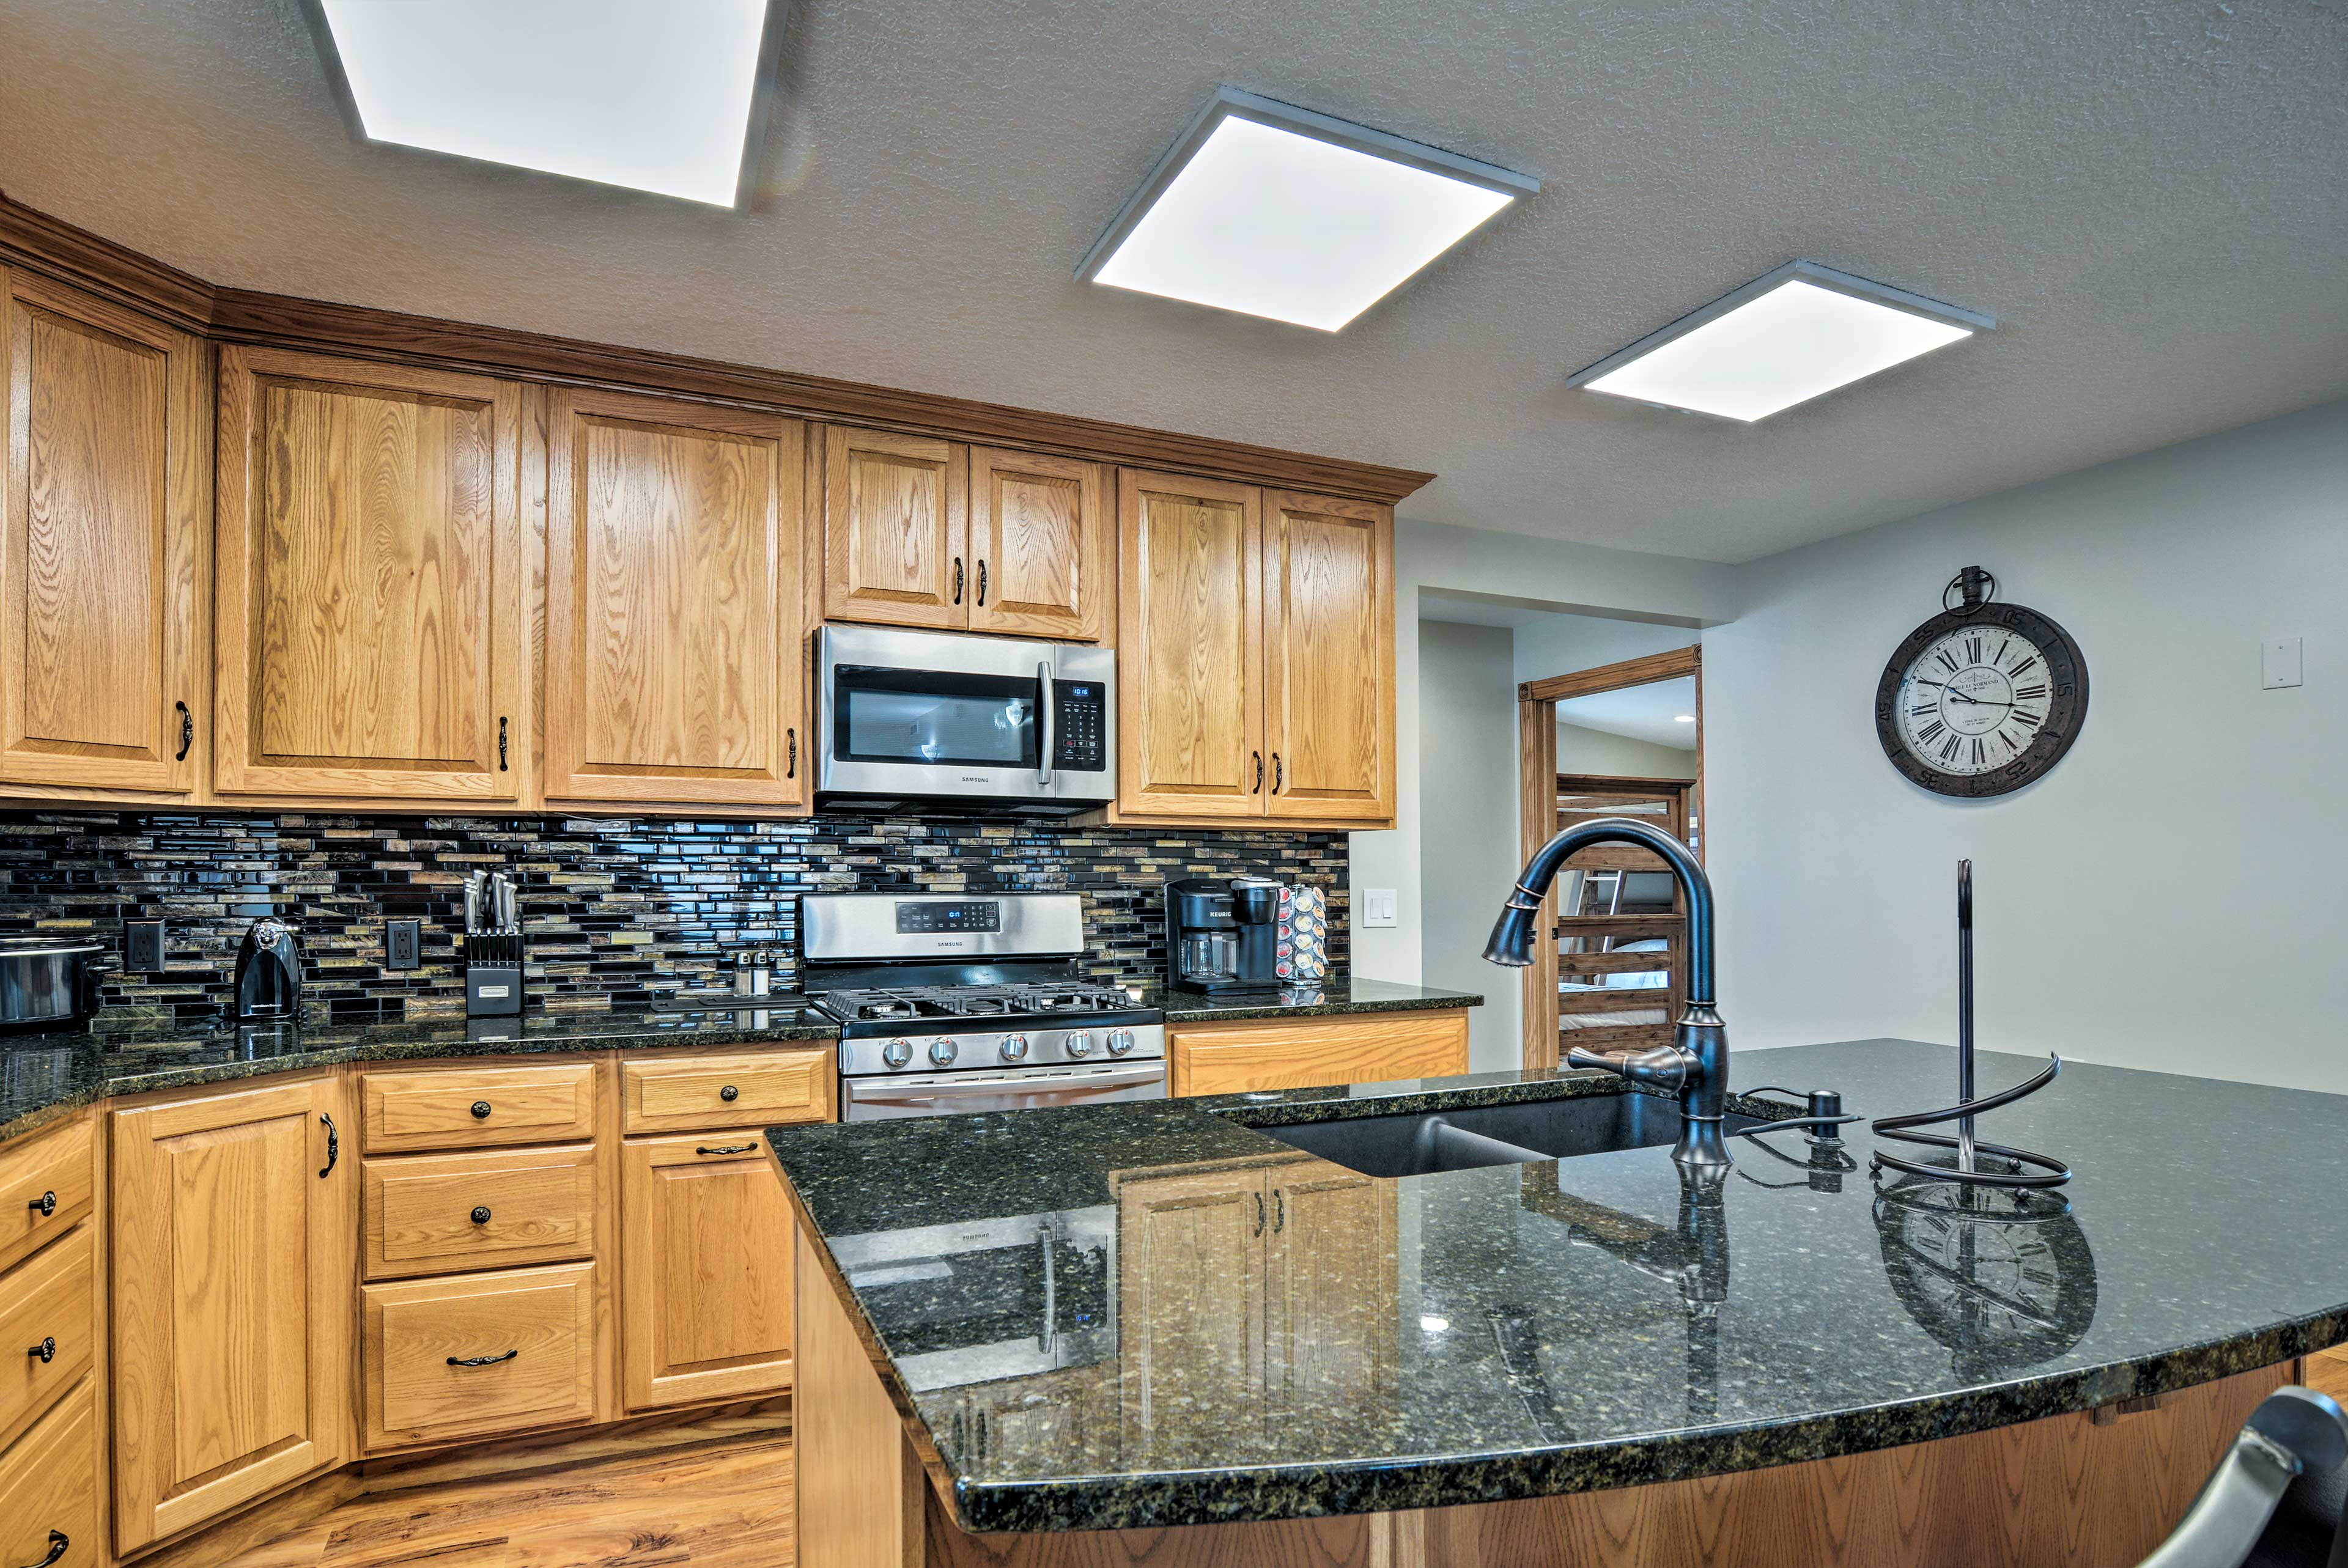 Make meals easily in this fully equipped kitchen.